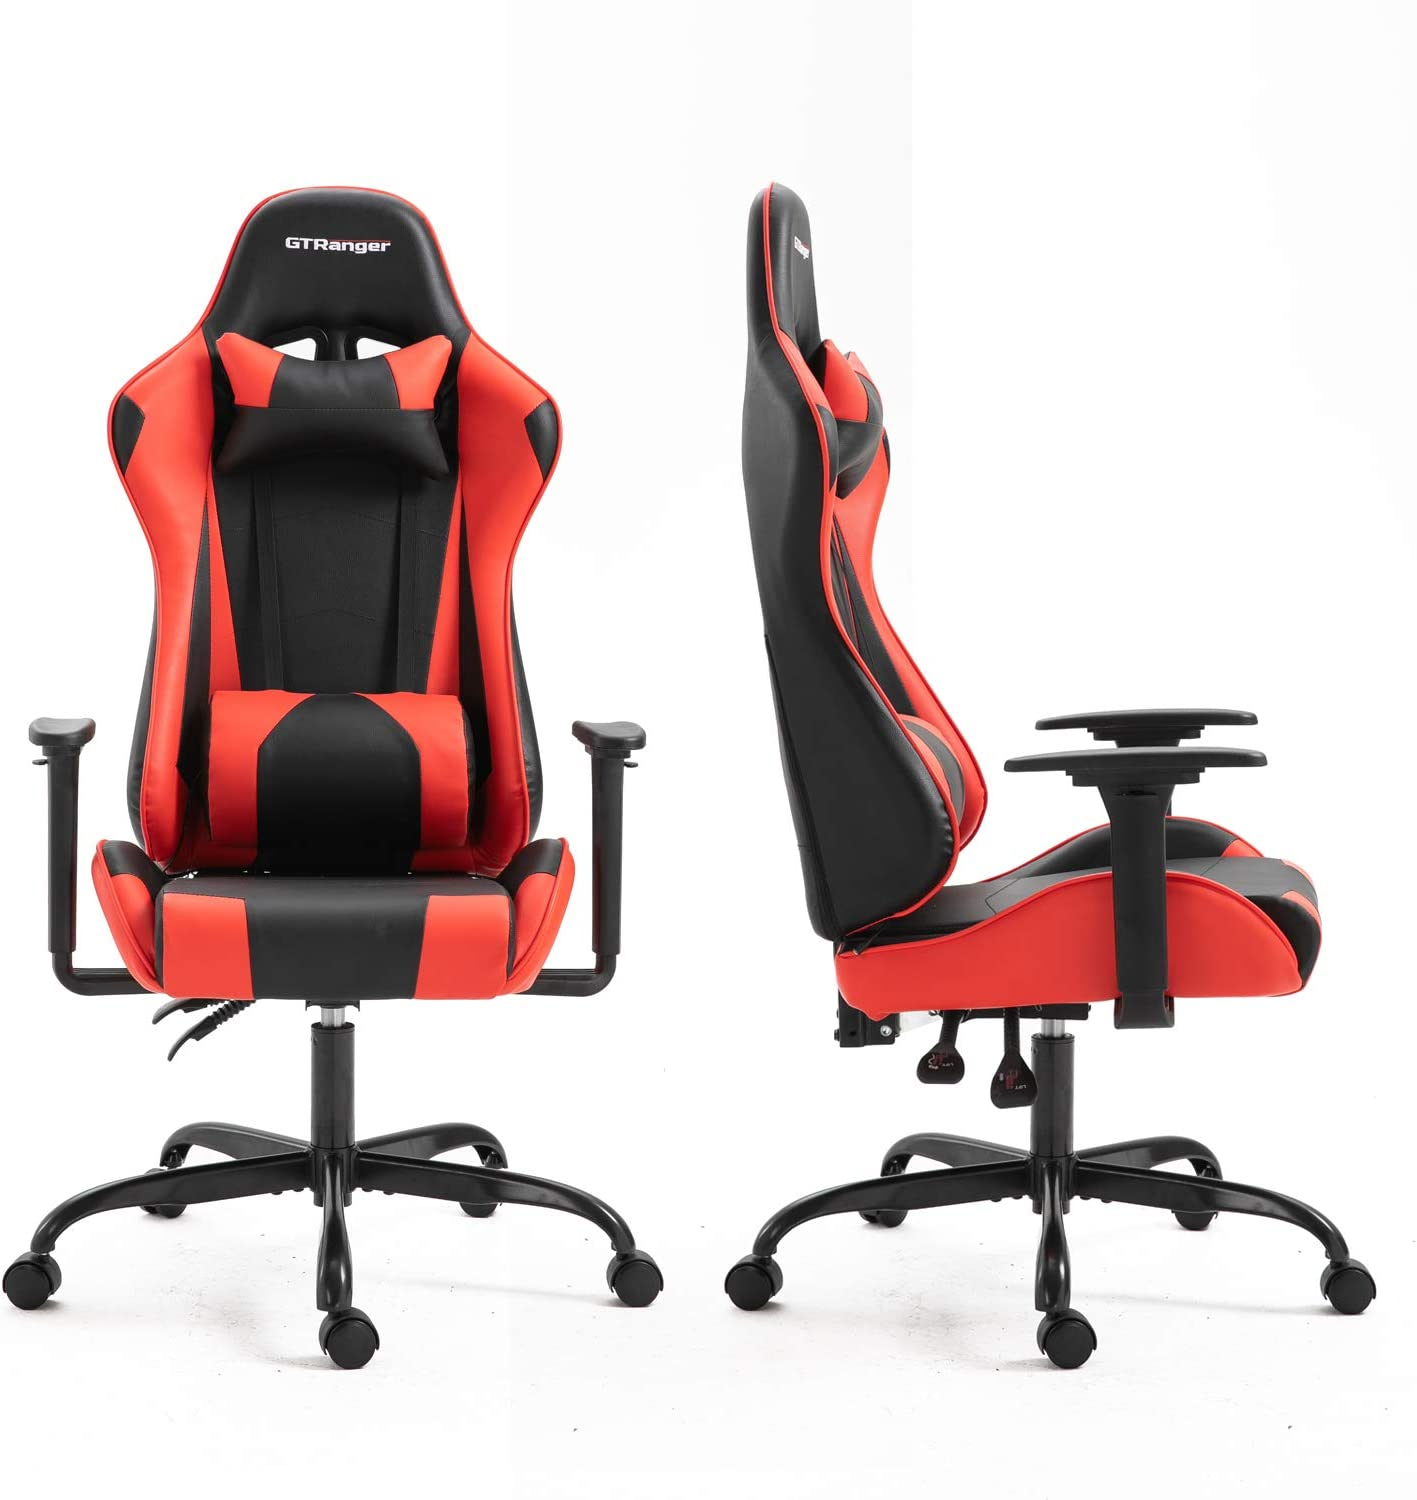 GTRanger Gaming Chair Racing Style High Back Computer Gaming Chair Adjustable Recliner Leather Office Desk Chair with Headrest and Lumbar Support Black Red